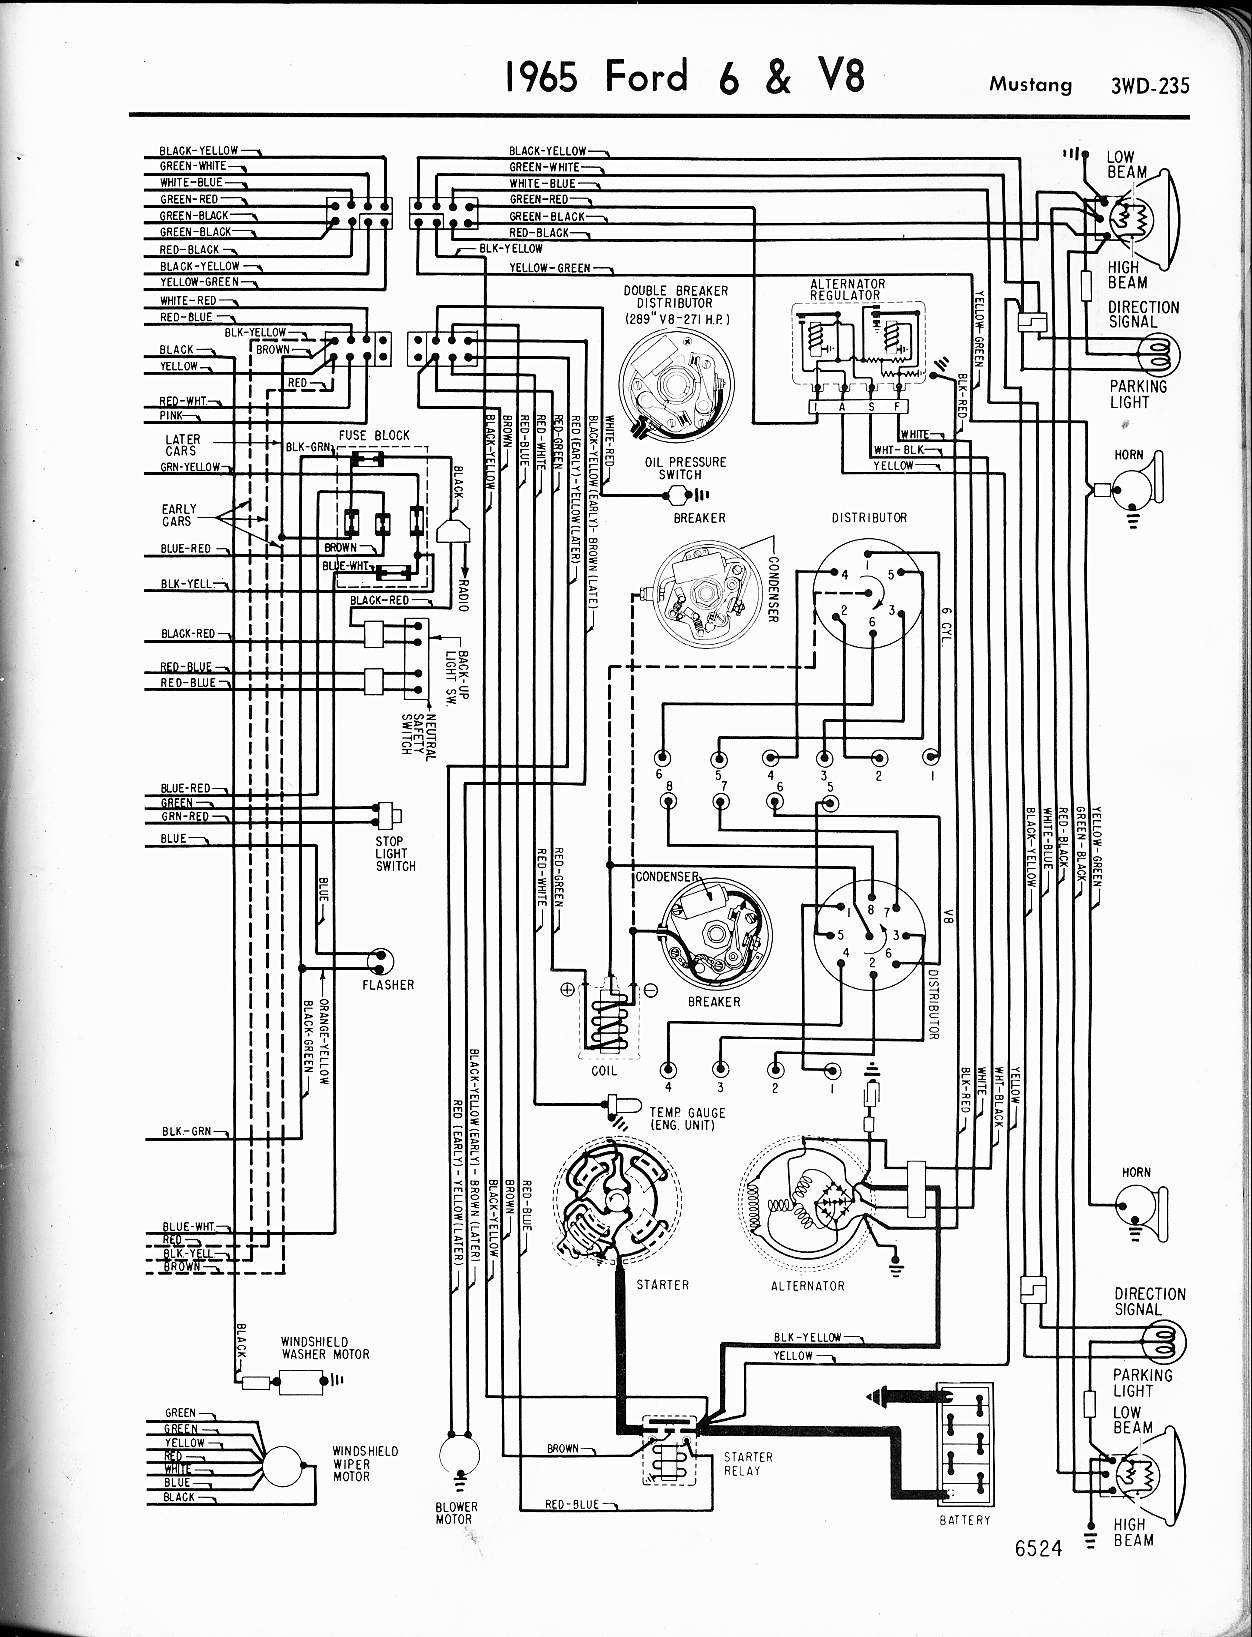 1965_mustang_wiring_2 ford diagrams 1970 ford torino wiring diagram at honlapkeszites.co